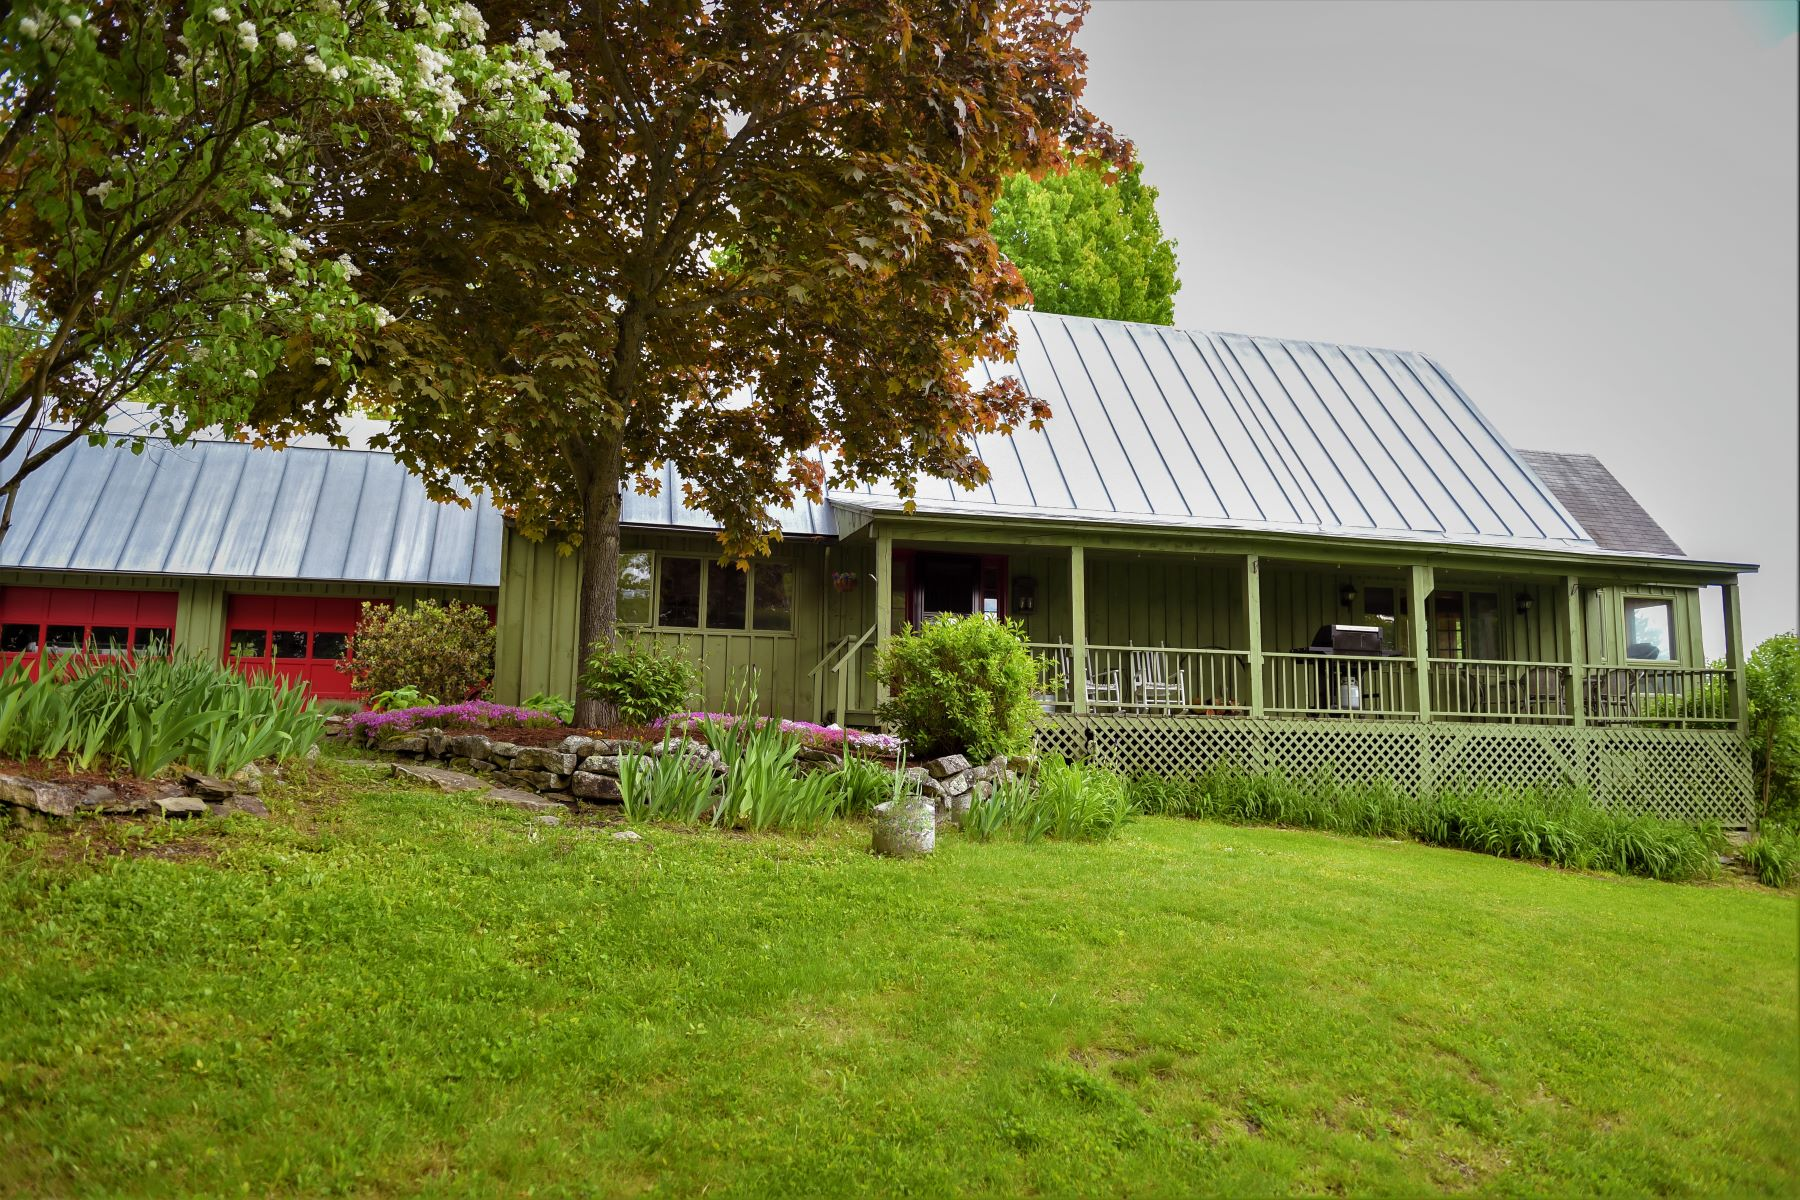 Single Family Home for Sale at 16 Black Hill Road, Piermont 16 Black Hill Rd Piermont, New Hampshire 03779 United States